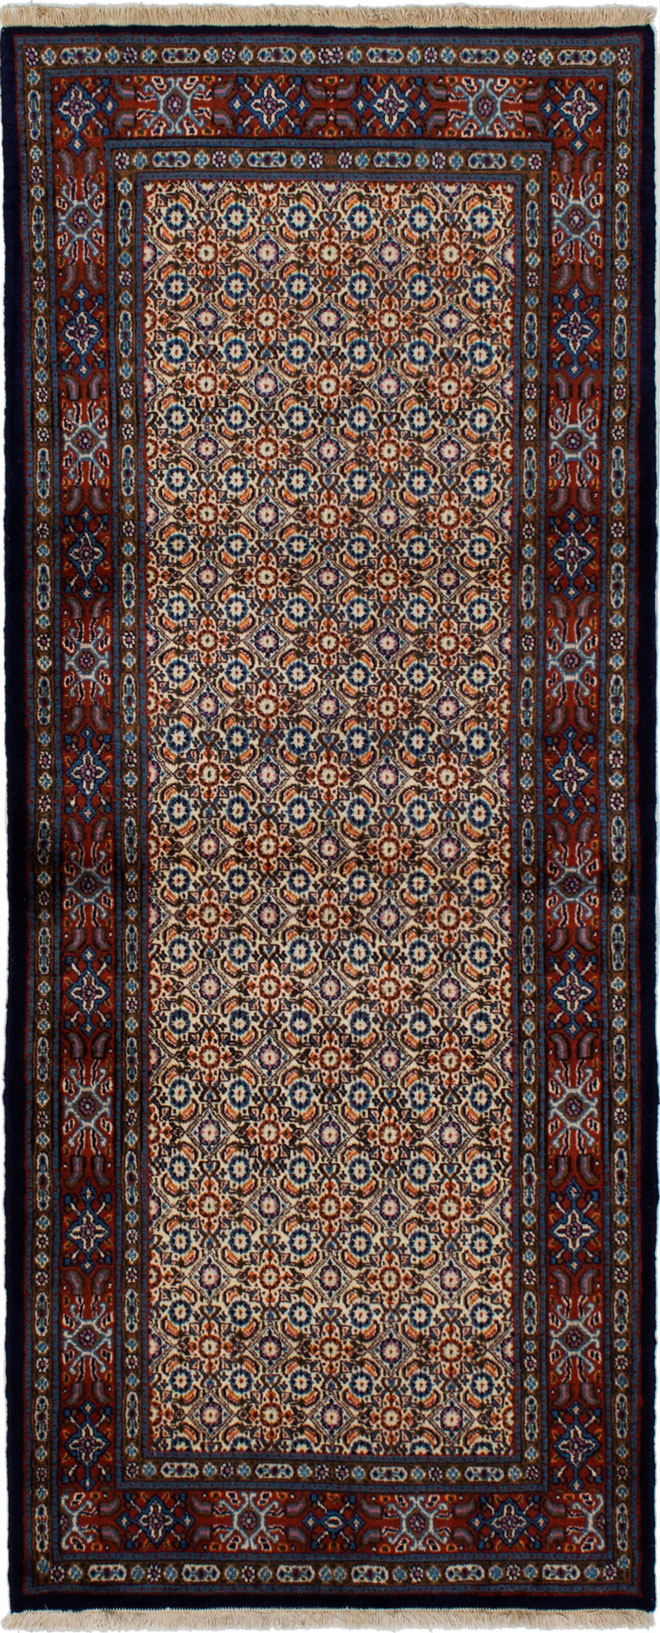 "Hand-knotted Mood Birjand Cream, Red Wool Rug 2'8"" x 6'7"" Size: 2'7"" x 6'7"""